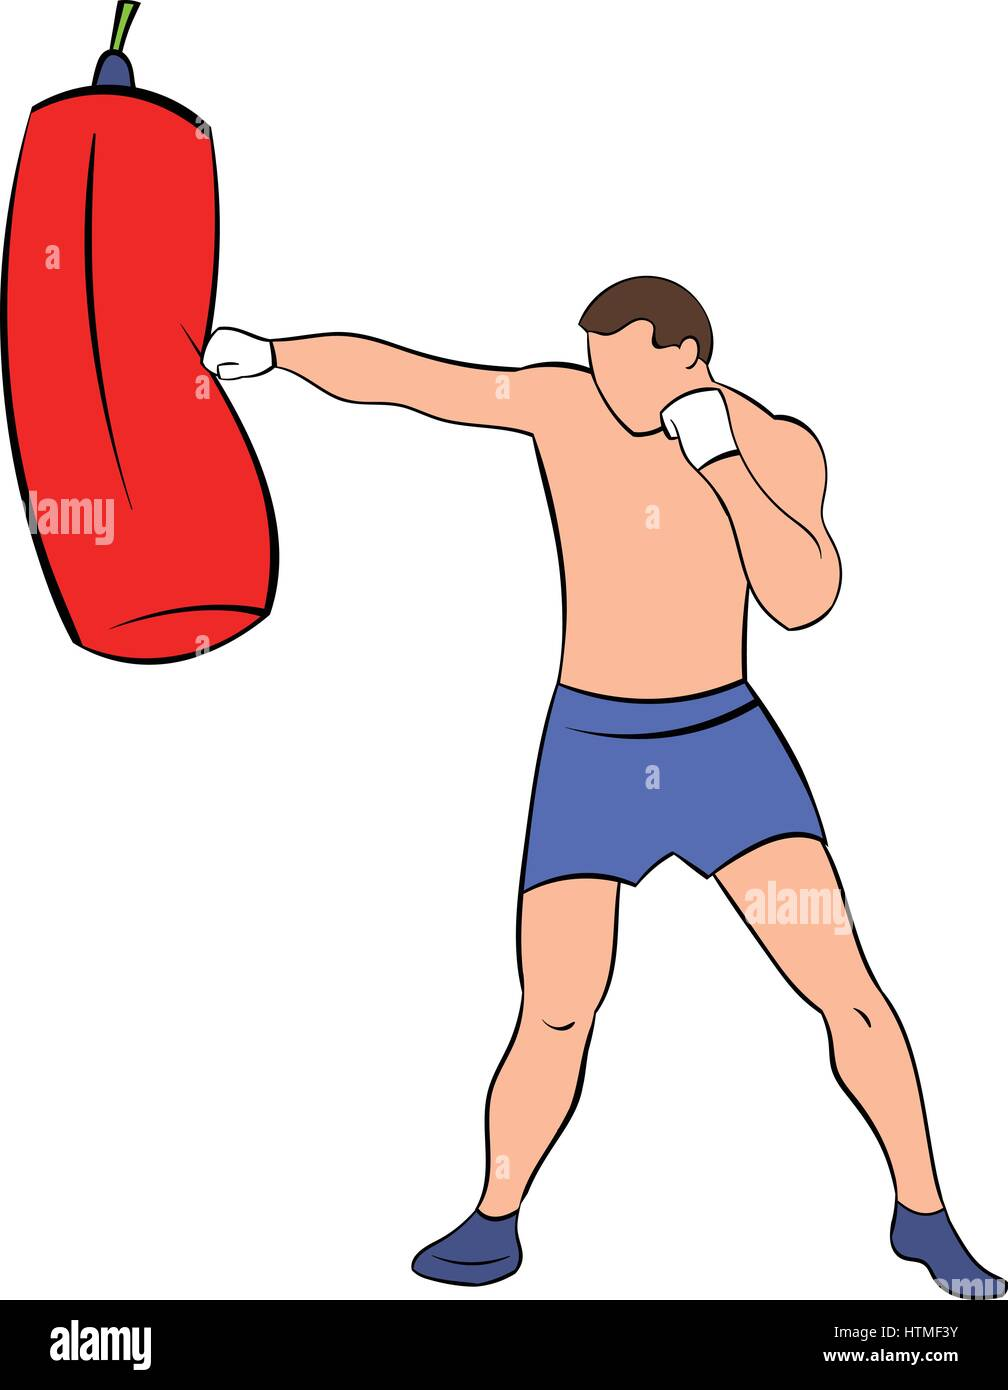 how to hit a punching bag